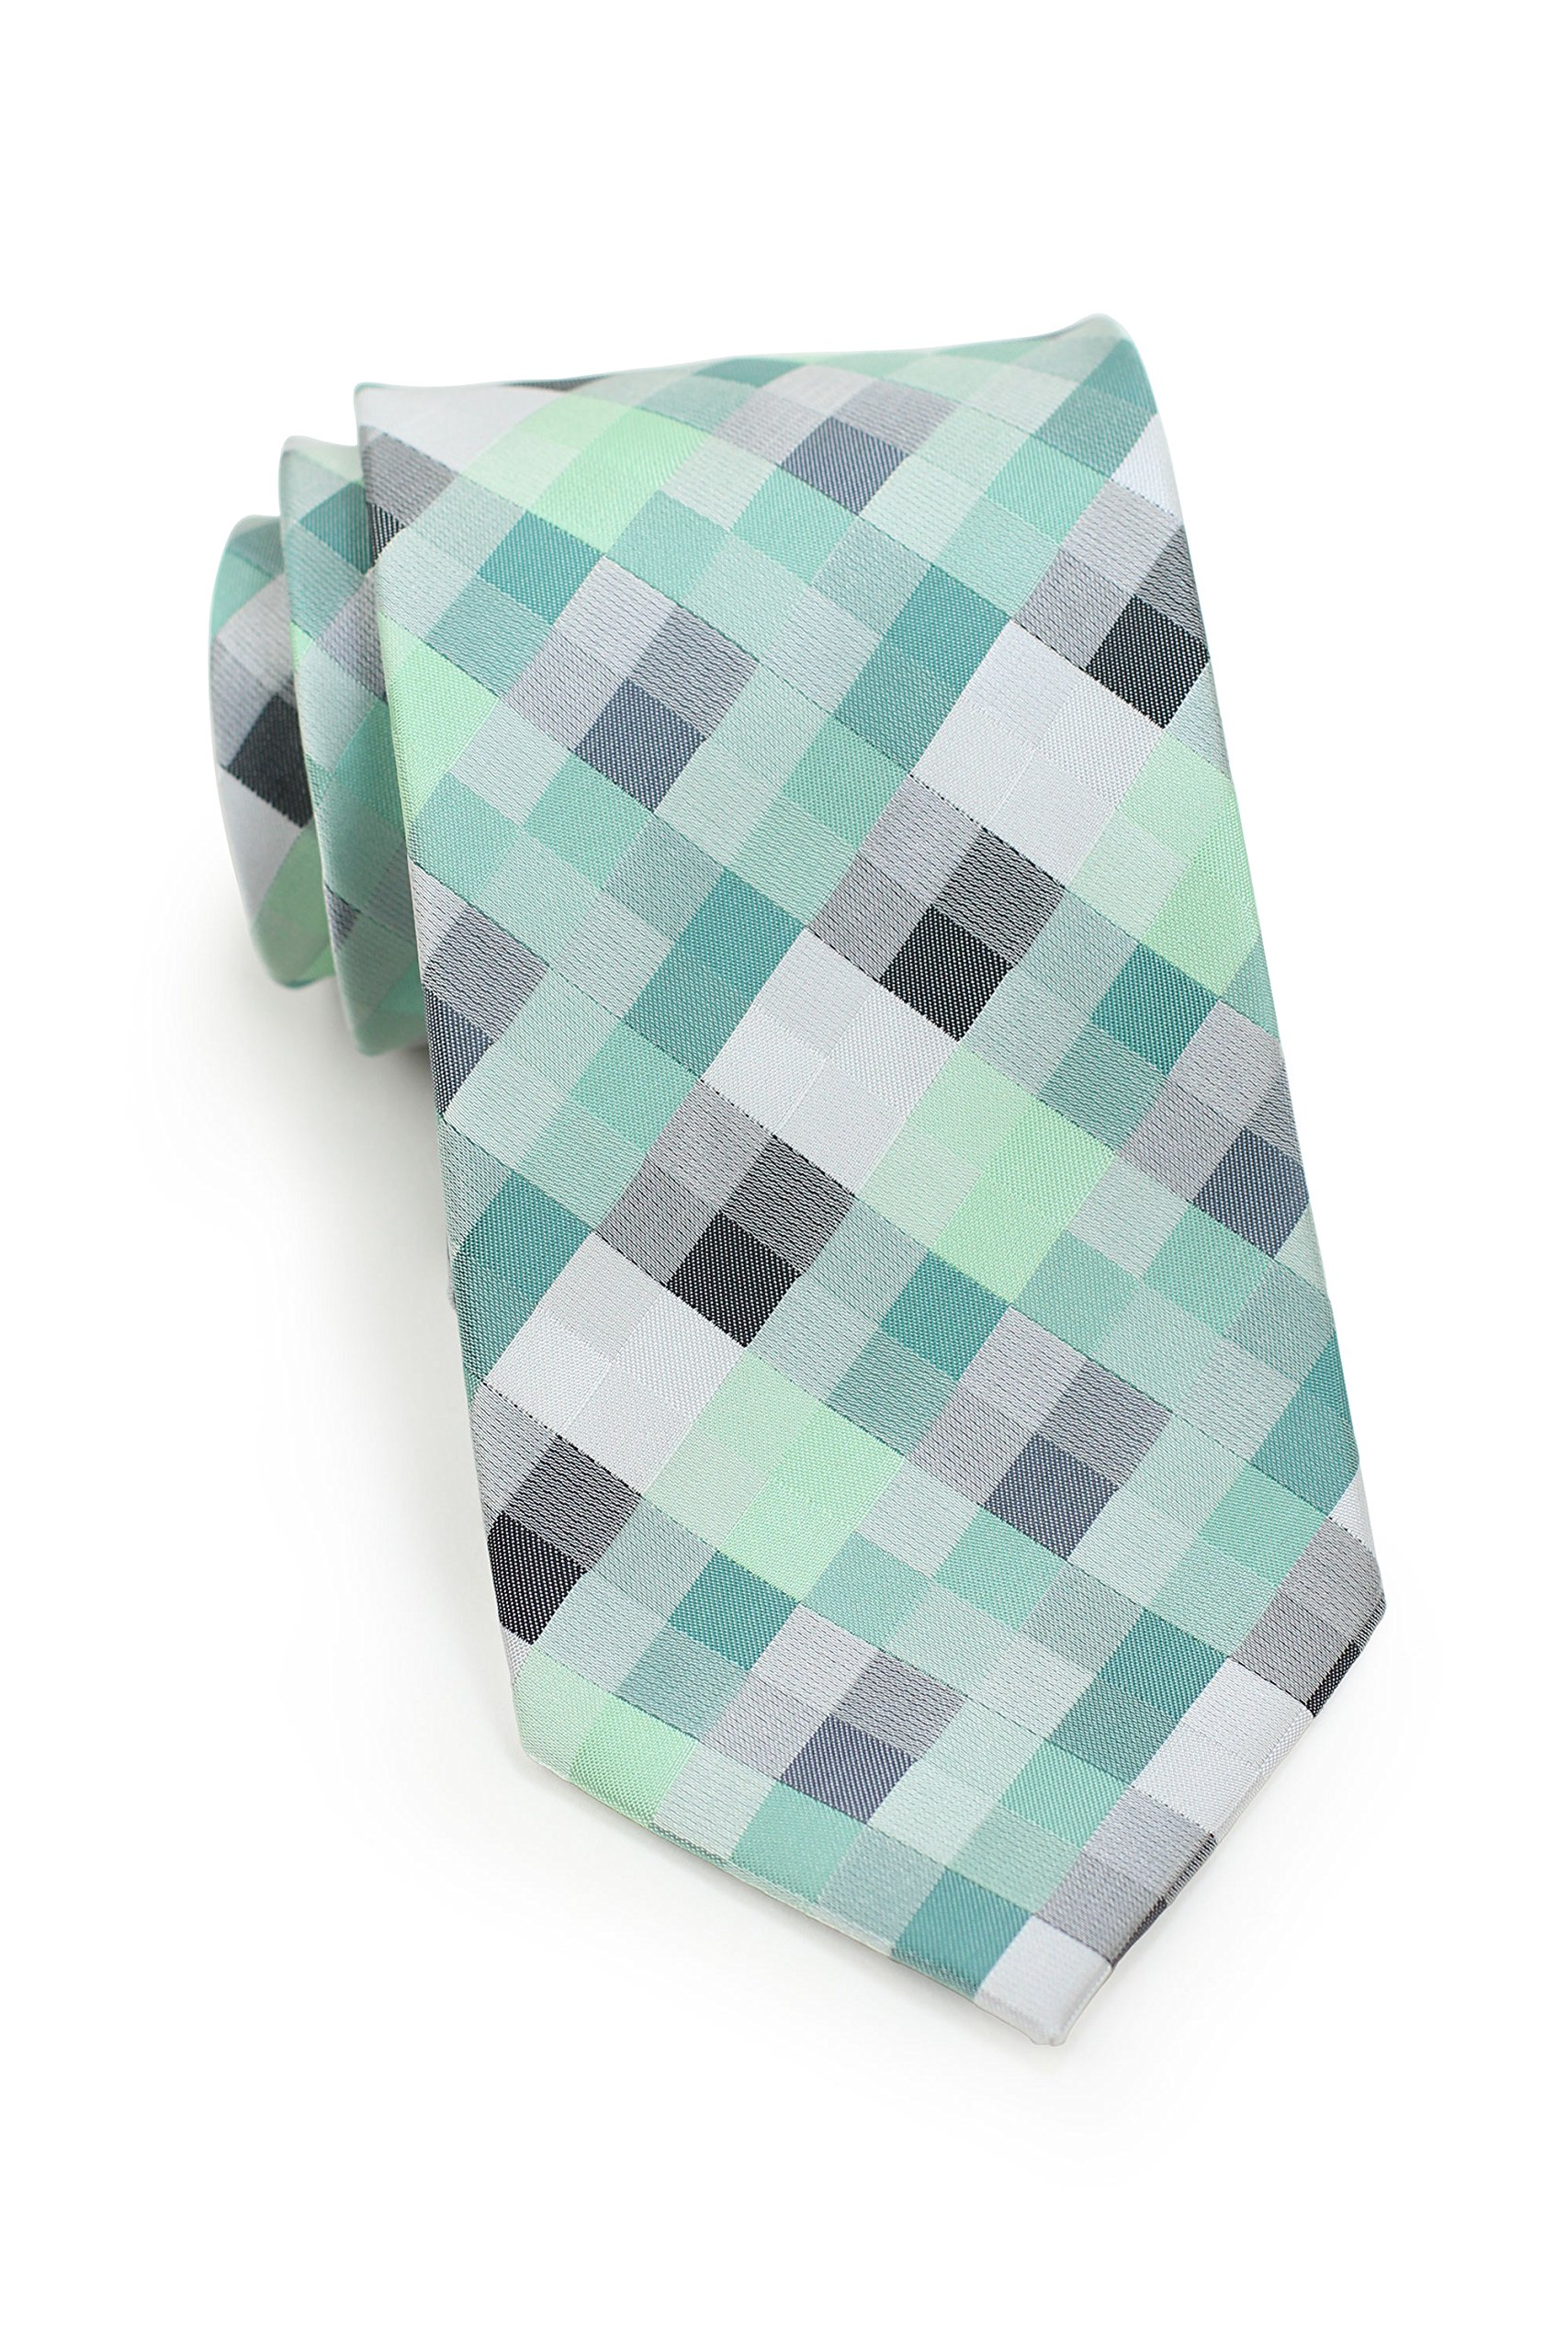 Bows-N-Ties Men's Necktie Patchwork Plaid Microfiber Satin Tie 3.25 Inches (Mint Green and Silver)